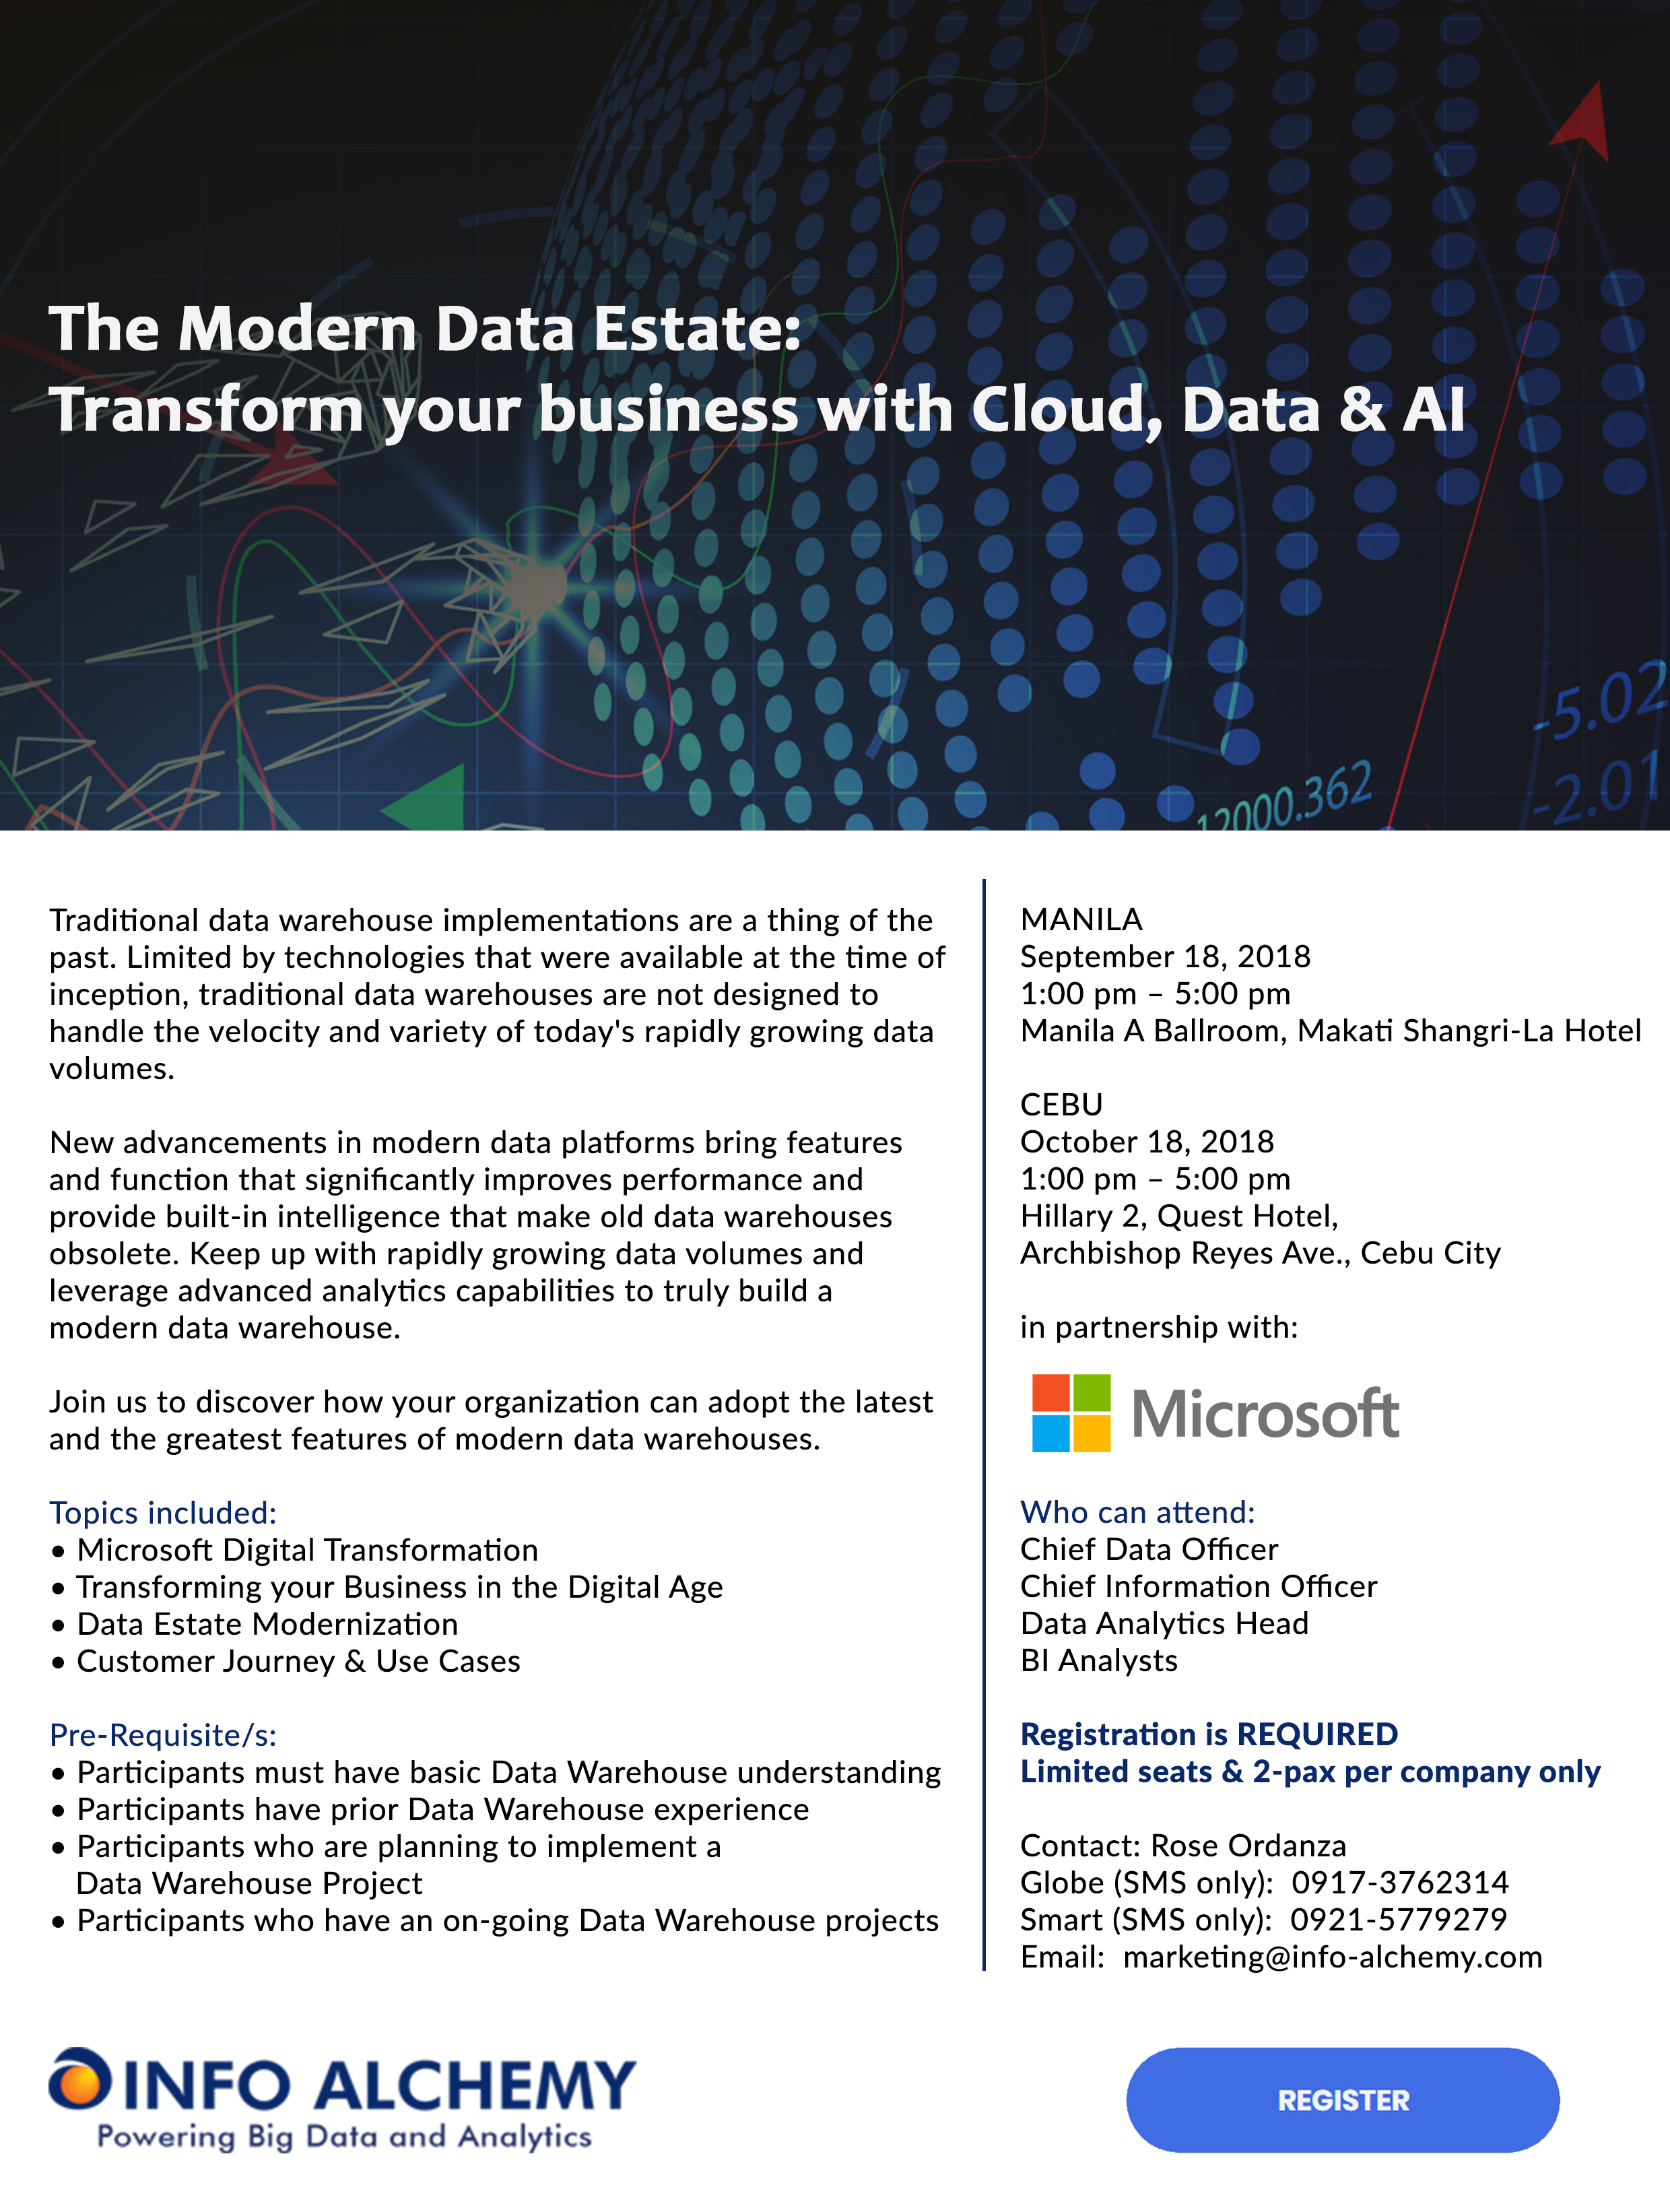 The Modern Data Estate: Transform your business with Cloud